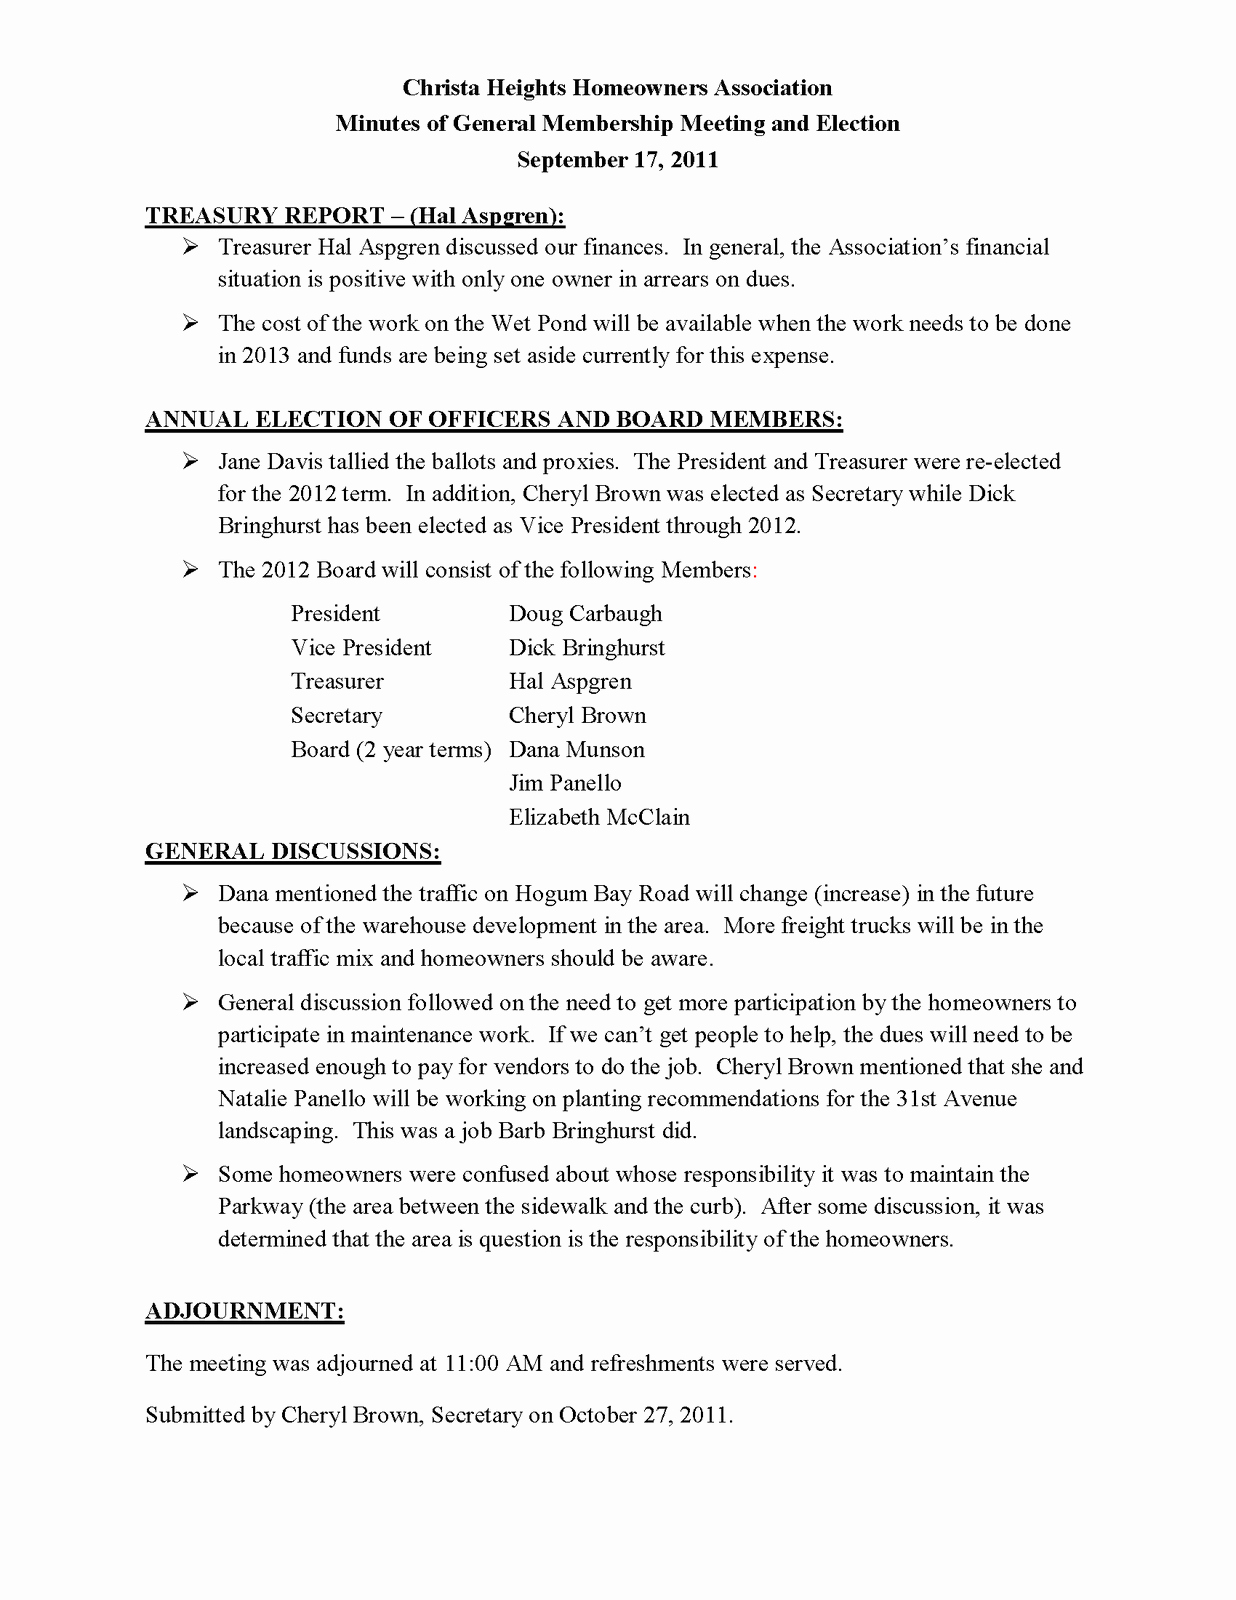 Hoa Board Meeting Minutes Template Unique 9 Of Homeowners association Minutes Template